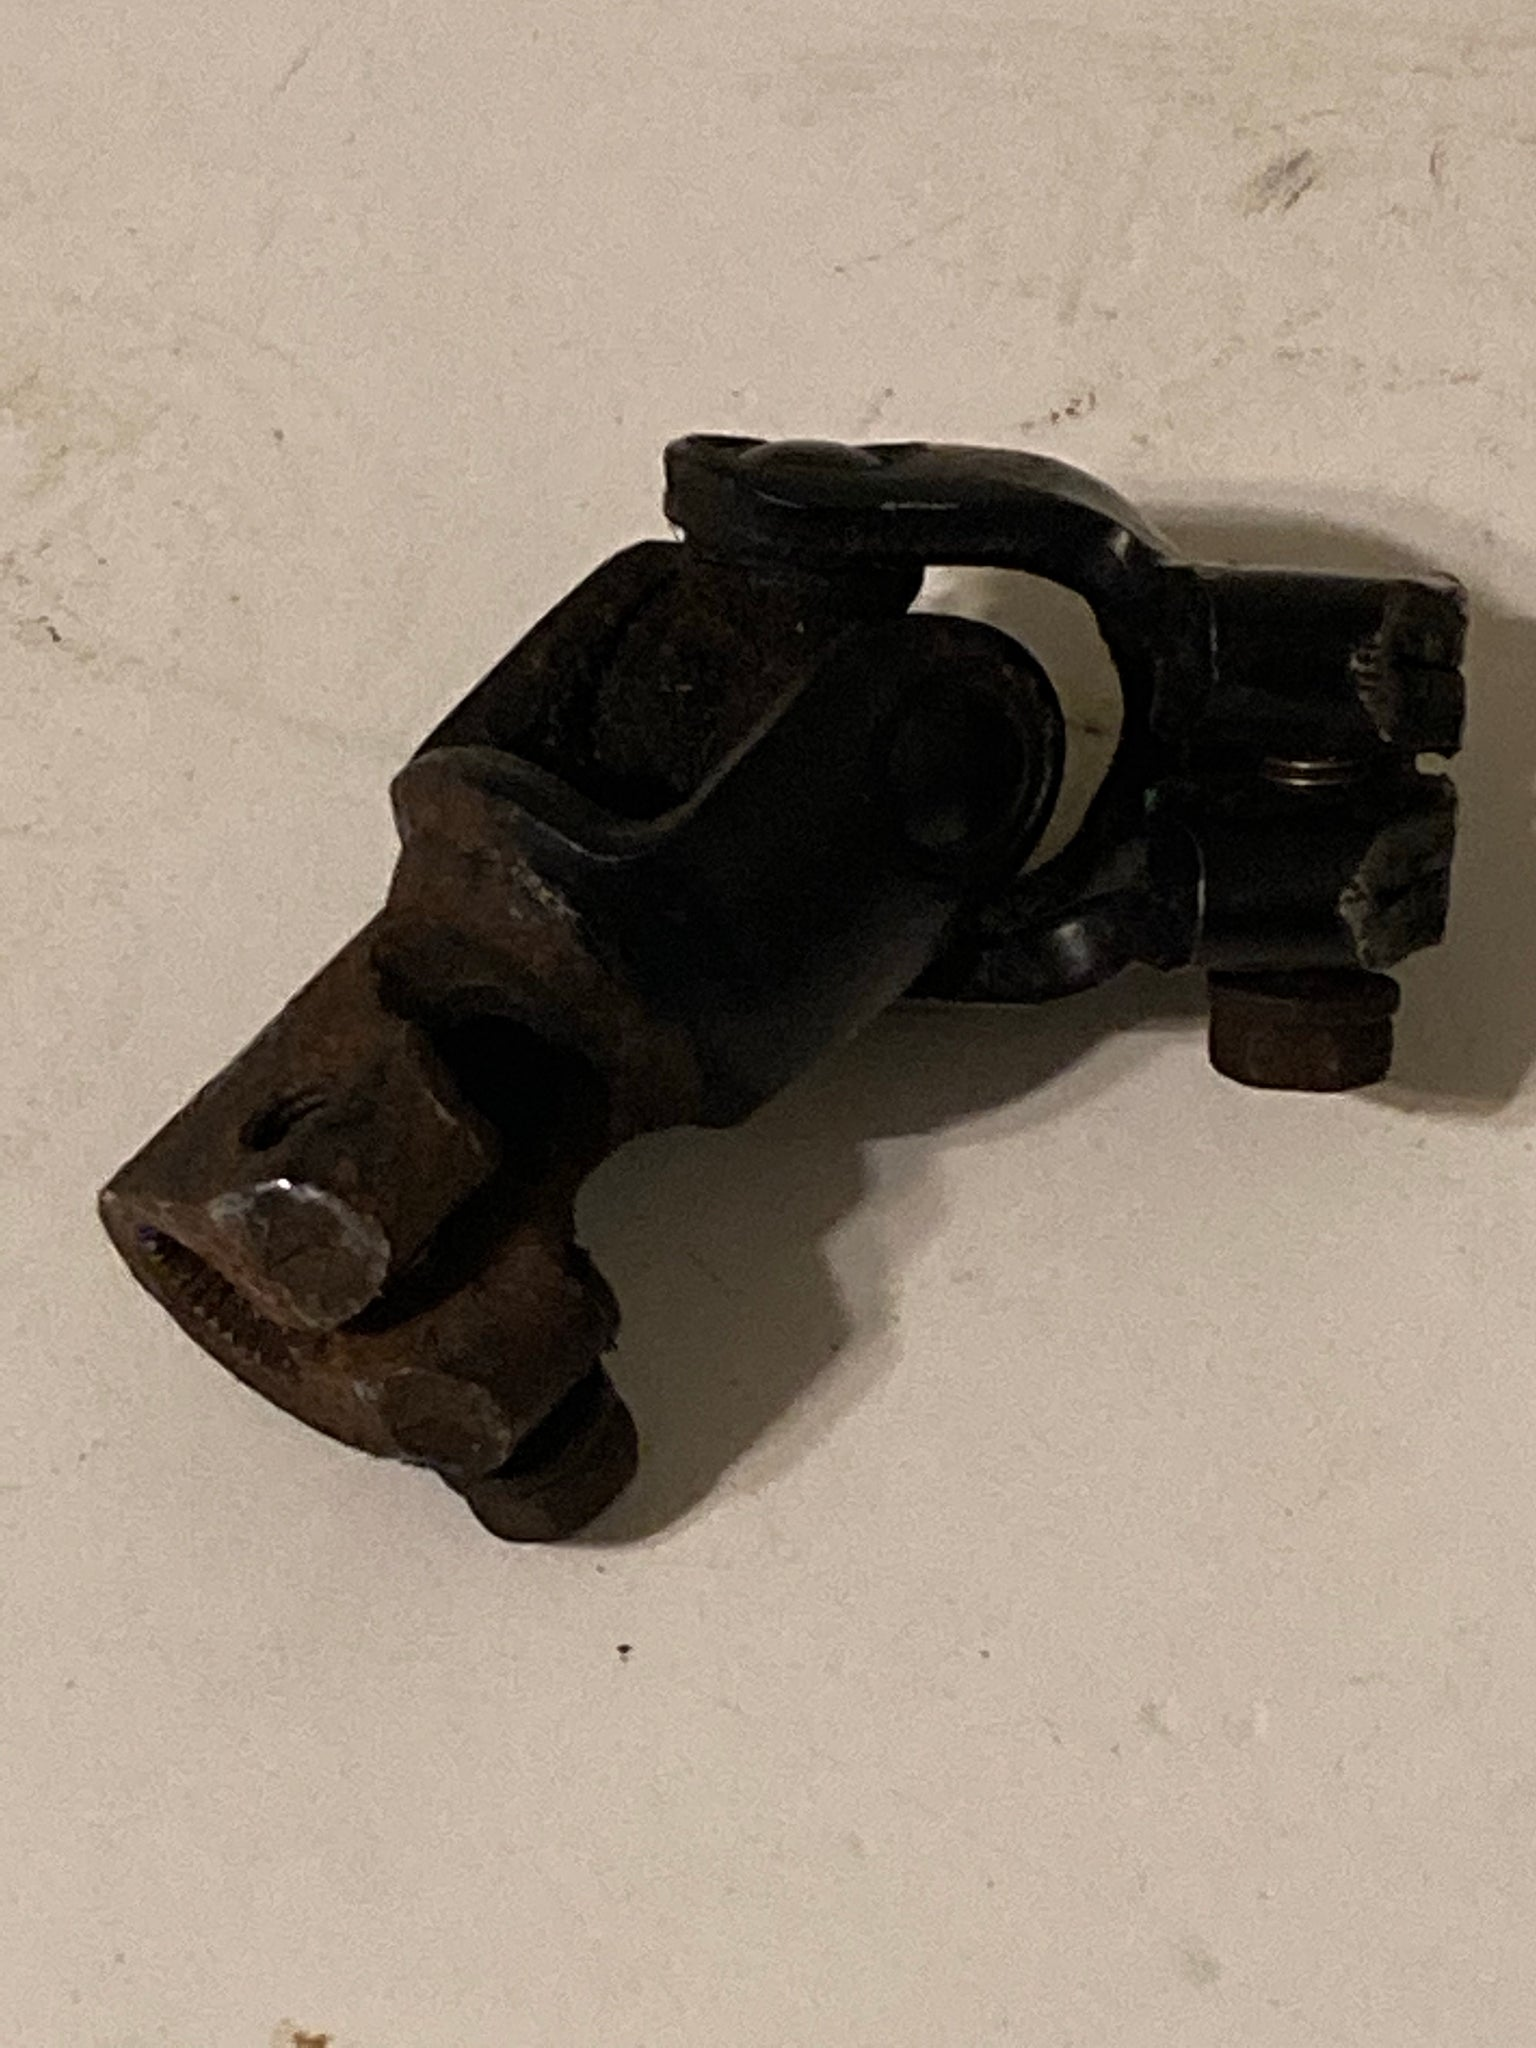 1990-1997 Mazda Miata Steering Knuckle at the Rack Lower Joint NA01-32-850B